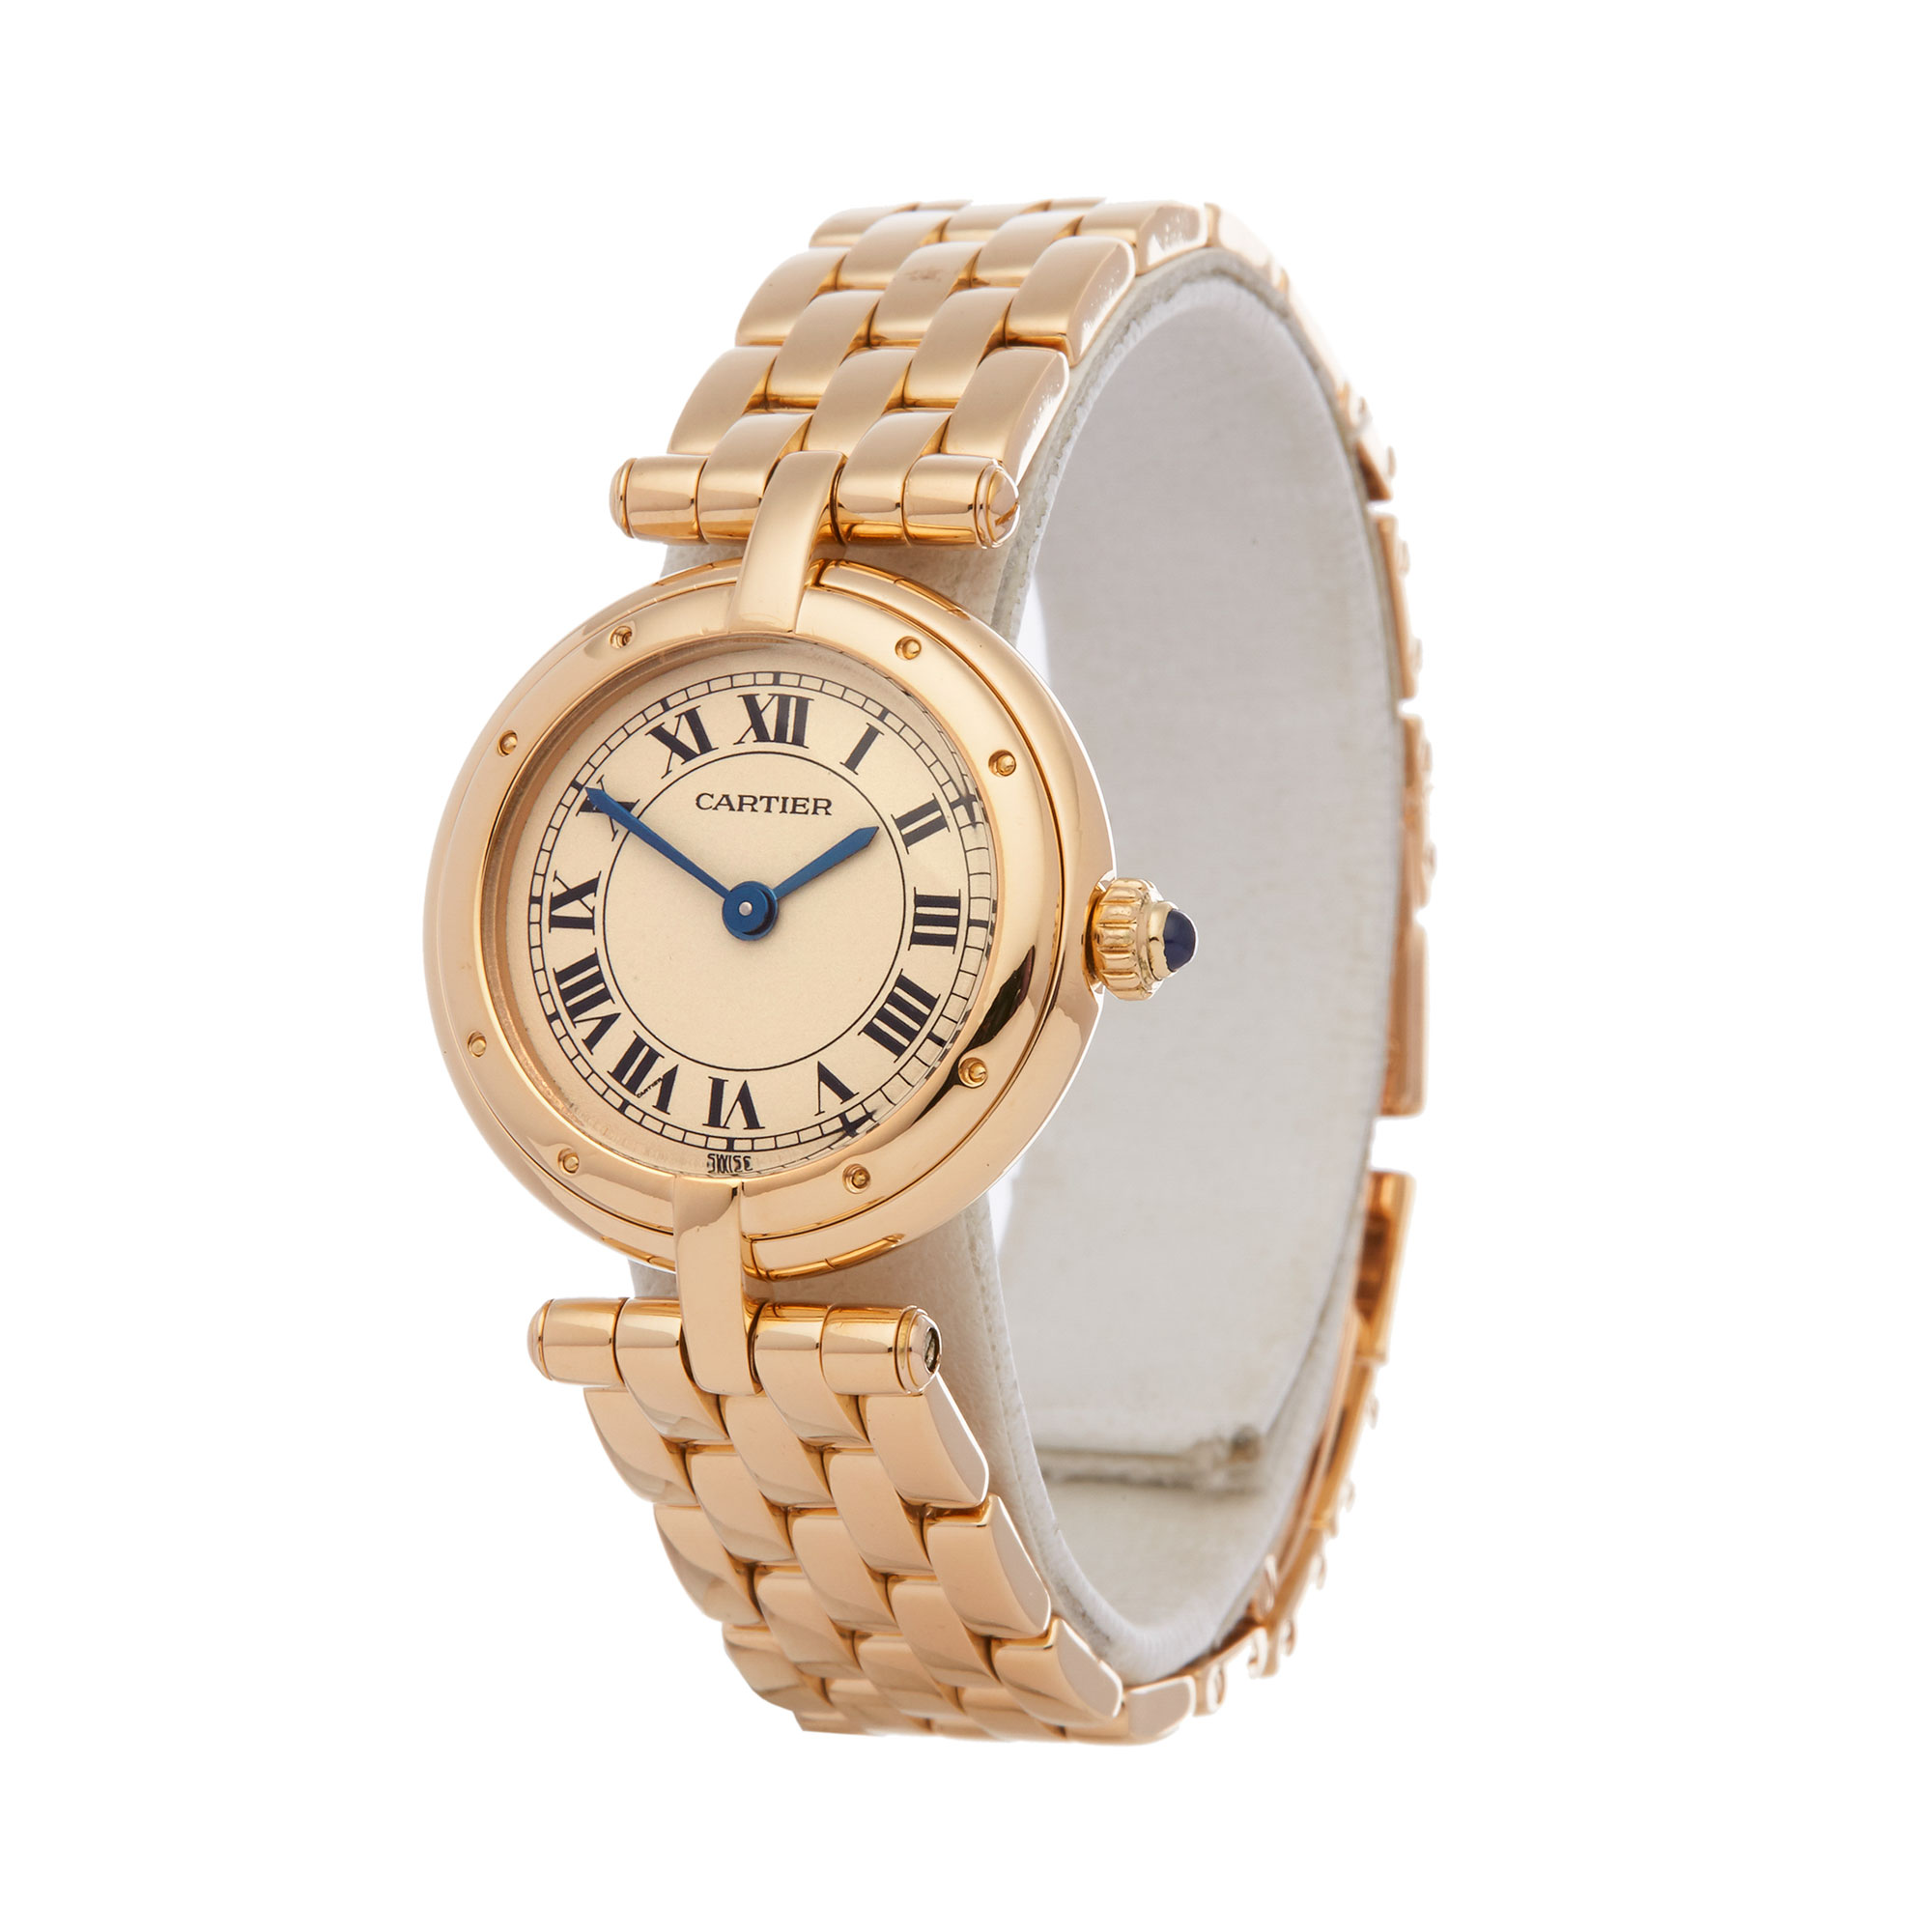 Cartier Panthère Vendome Ladies Yellow Gold Watch - Image 8 of 9